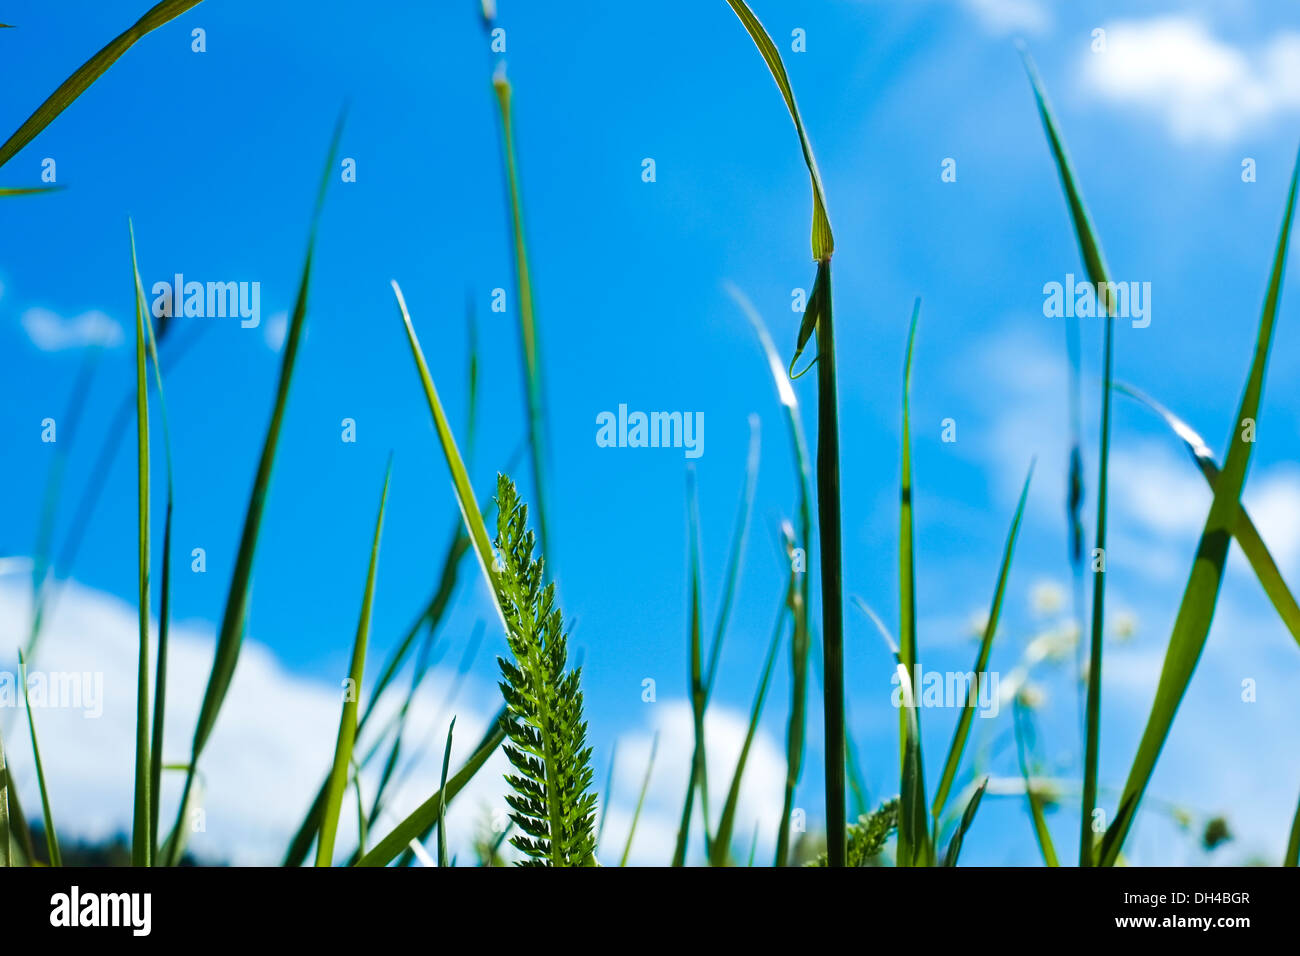 Close-up of blade of grass, Alps Mountains, Italy - Stock Image